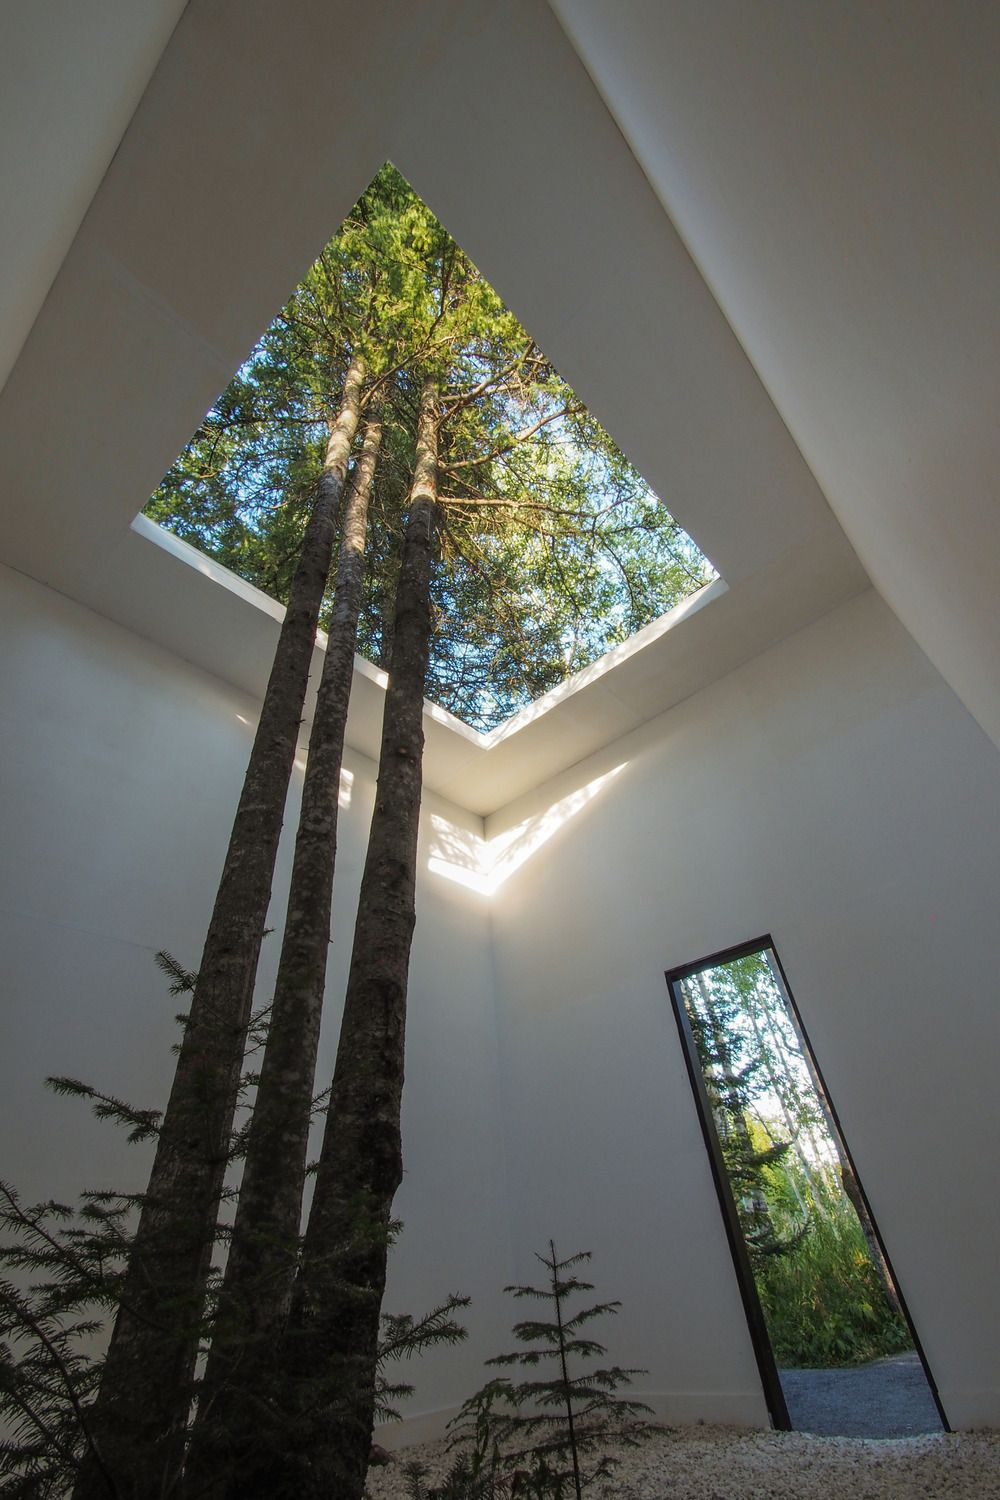 Tree's in house- Benefits of Biophilia, Image Credit - Pinterest